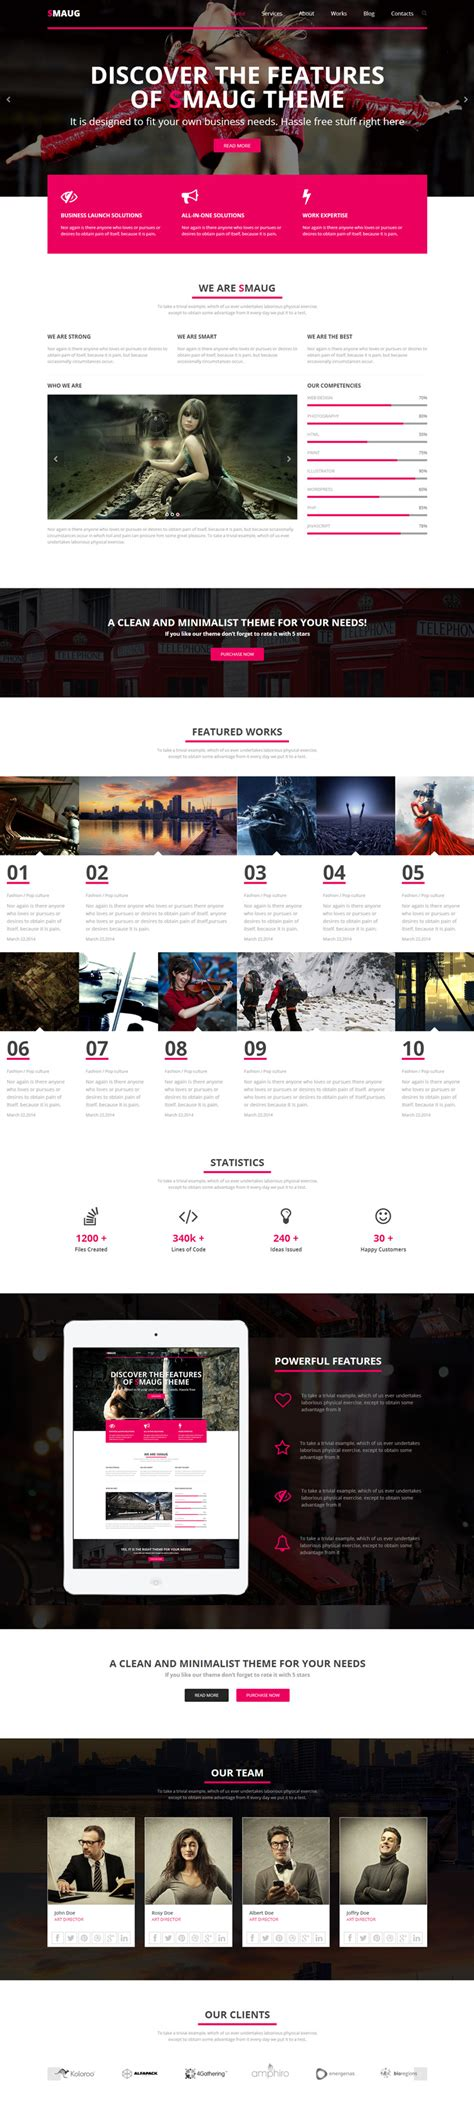 bootstrap html5 css3 template smaug wp mustache